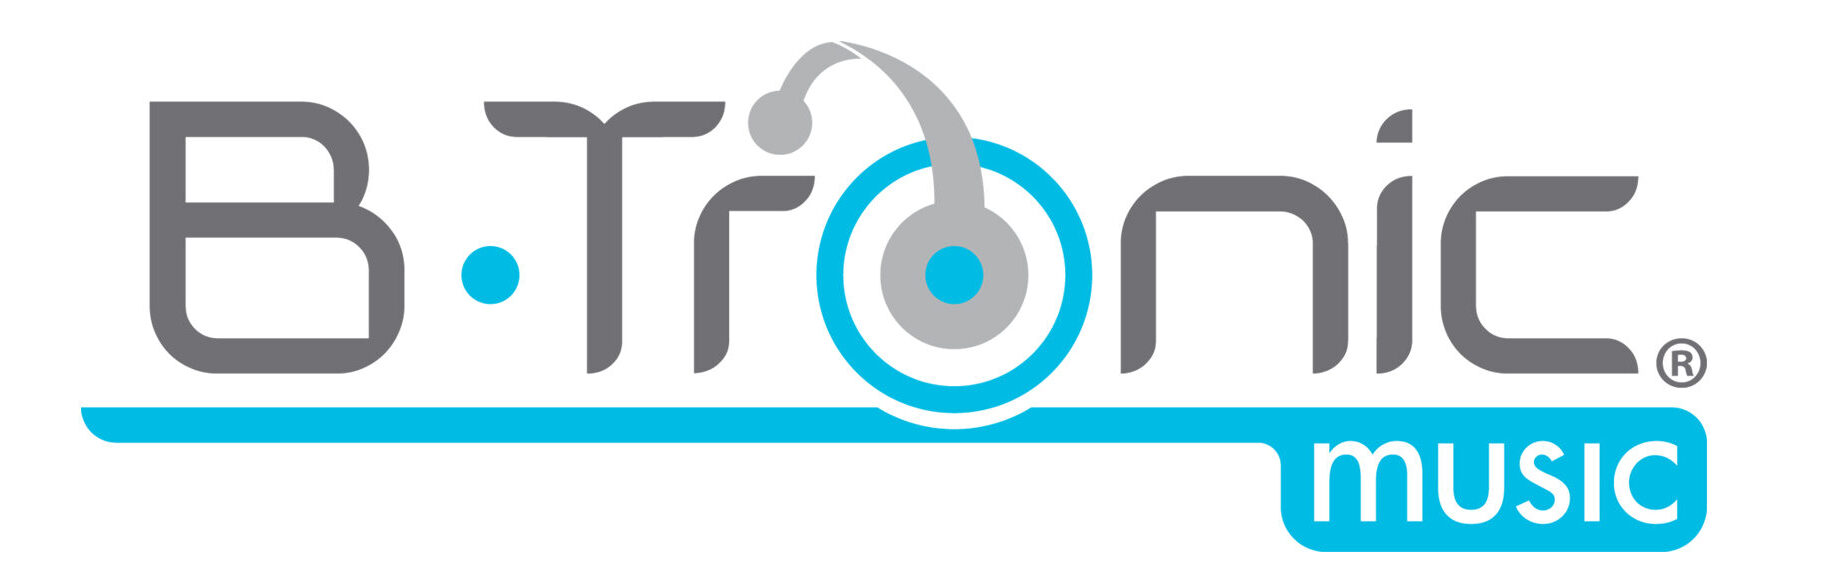 Be Tronic